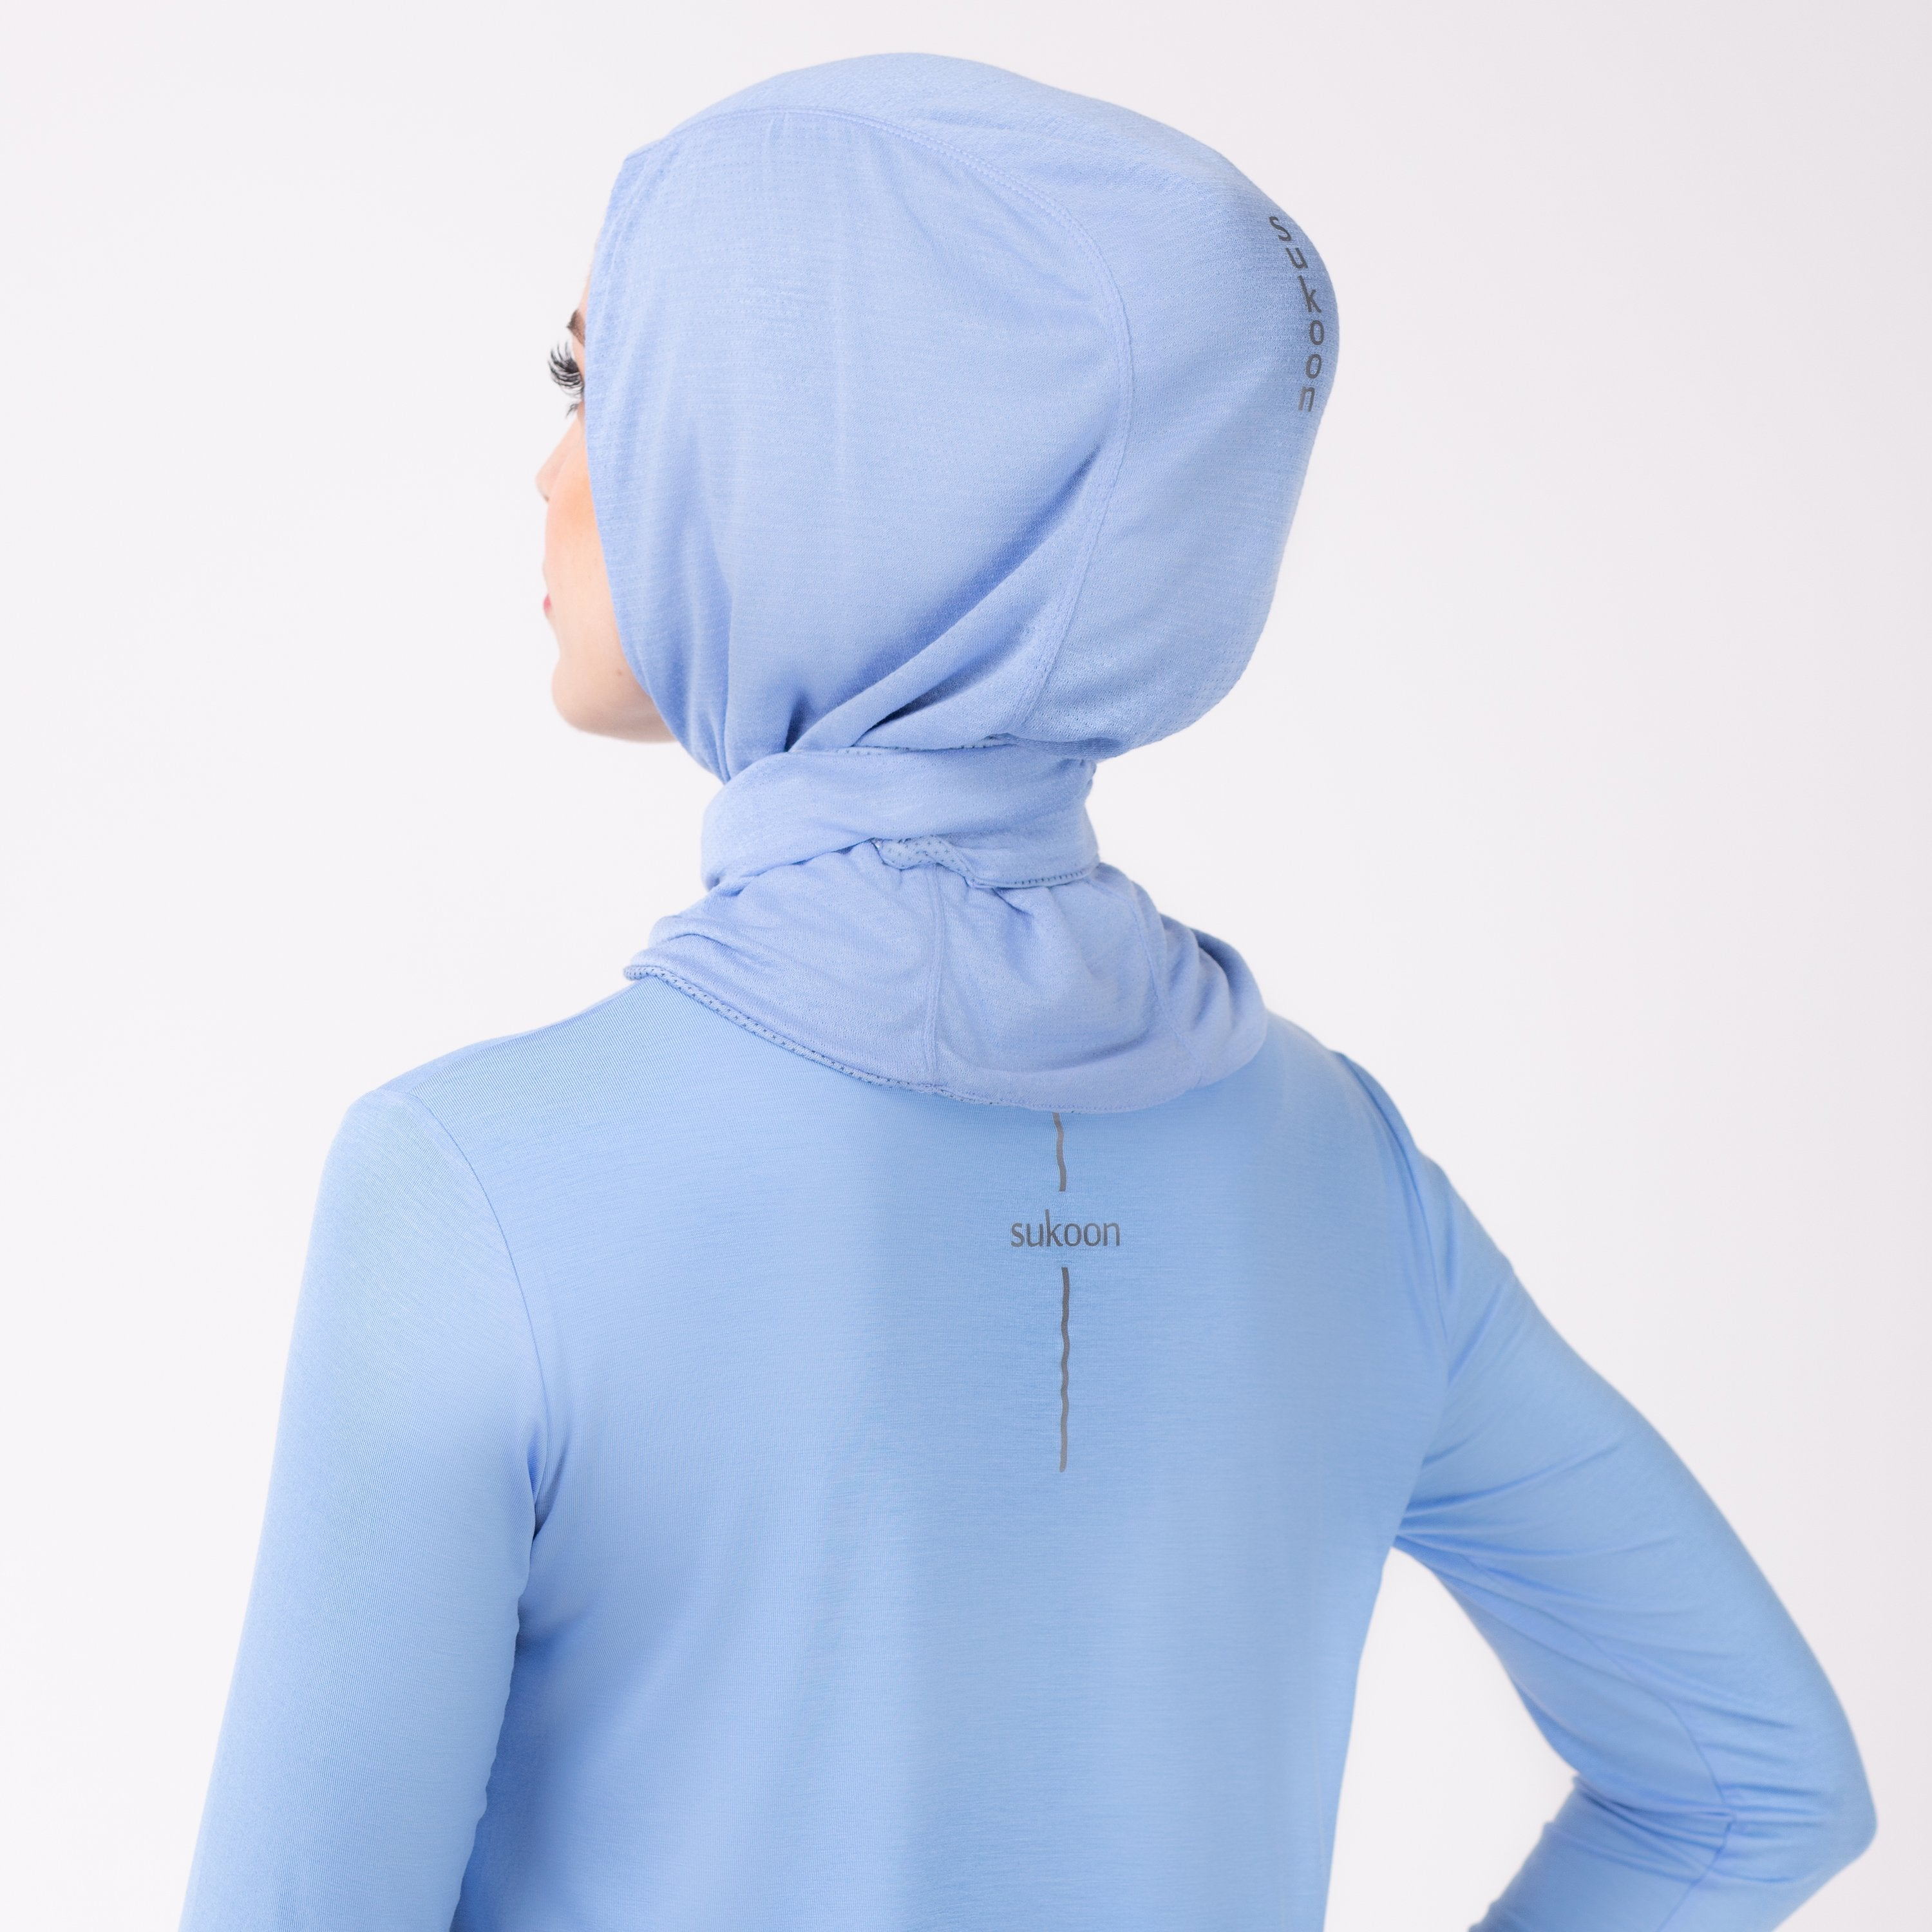 Back detail of a woman in a sky blue shirt with a matching sky blue HAWA hijab.